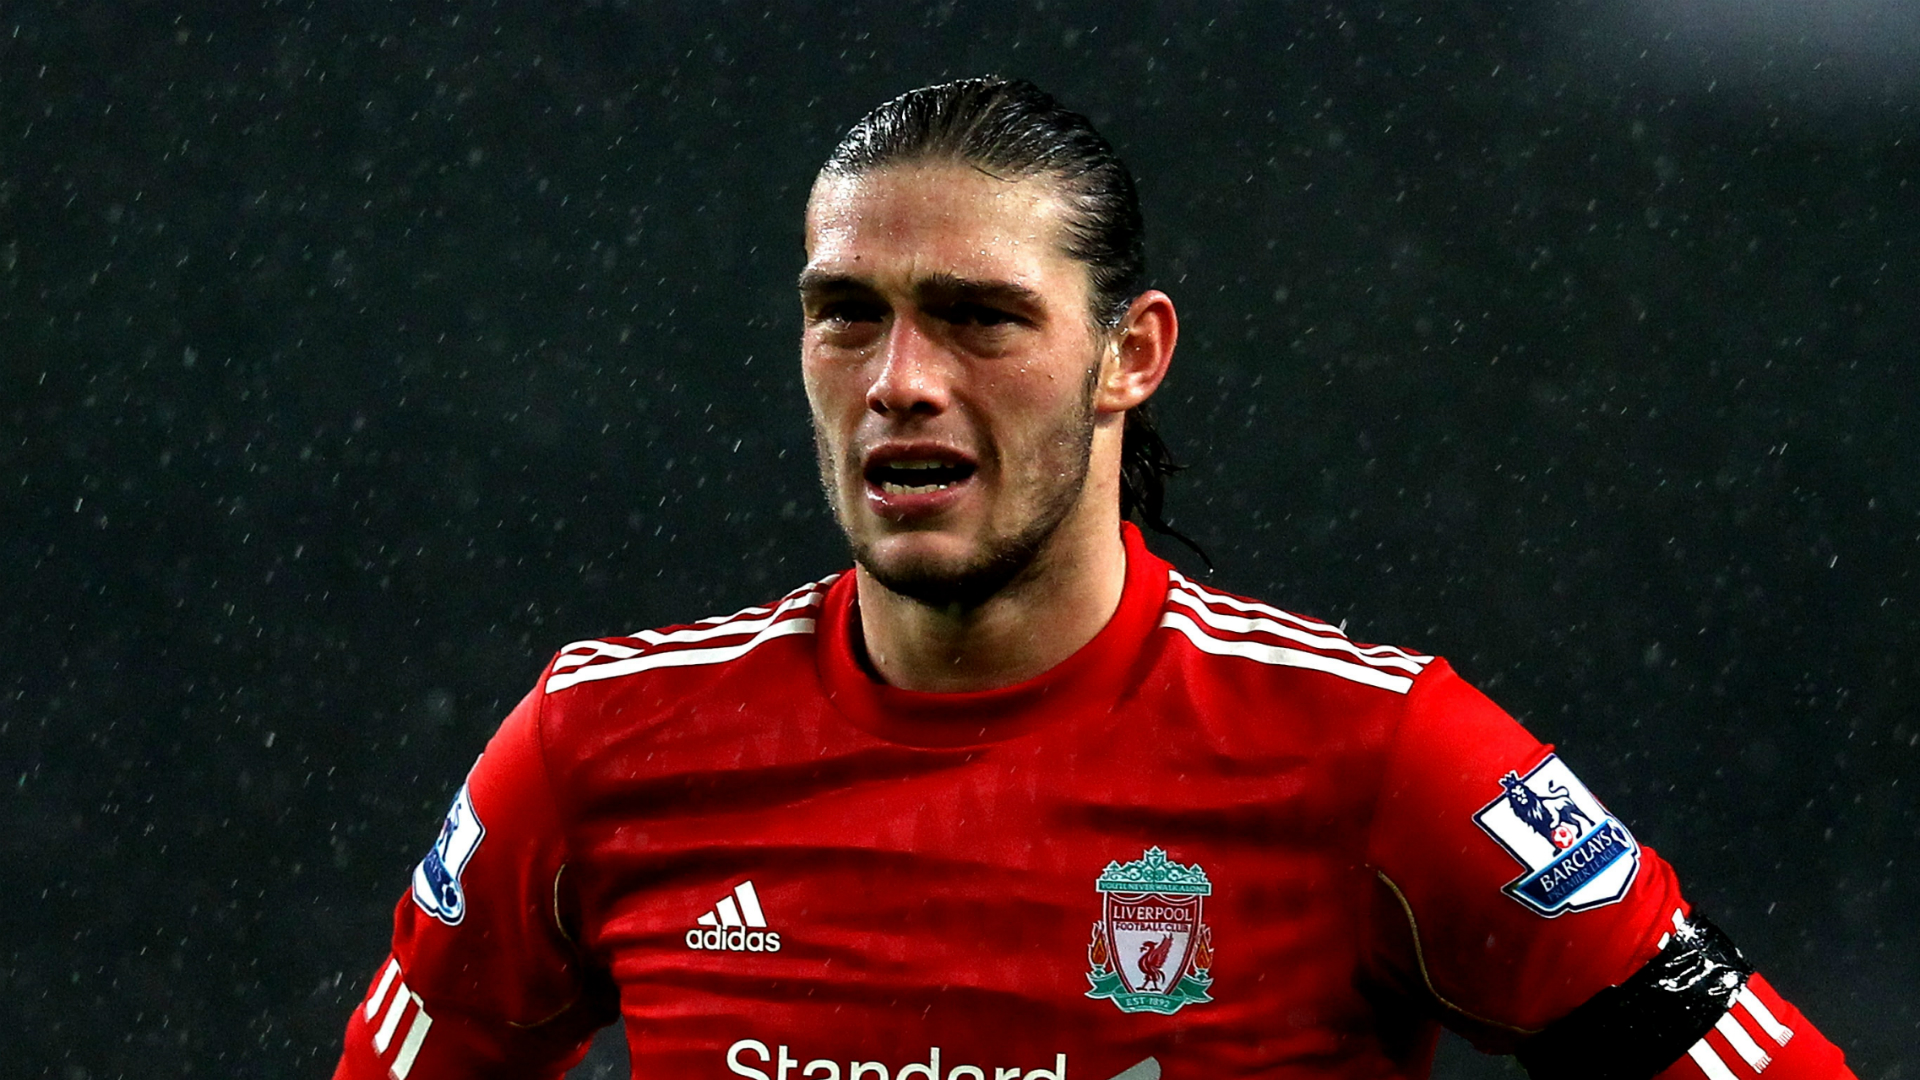 Carroll: I could only name two Liverpool players when I joined from Newcastle in 2011